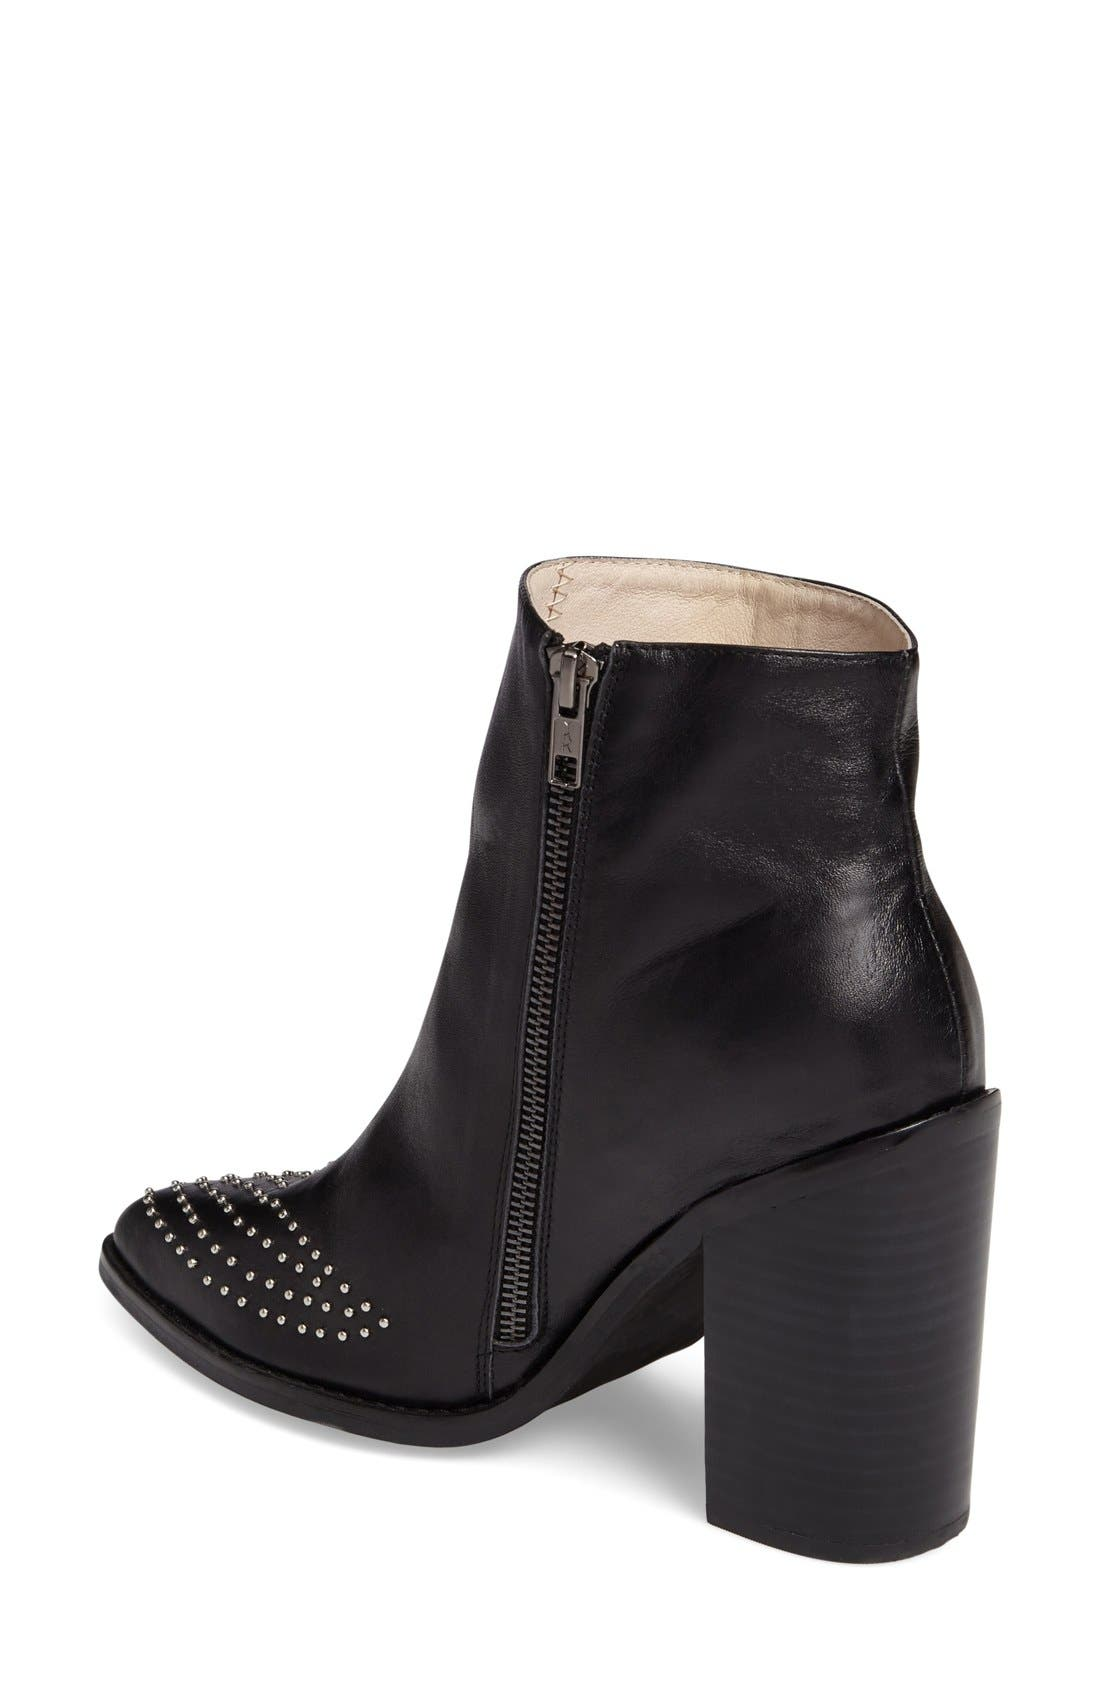 Joan Bootie,                             Alternate thumbnail 2, color,                             Black Leather